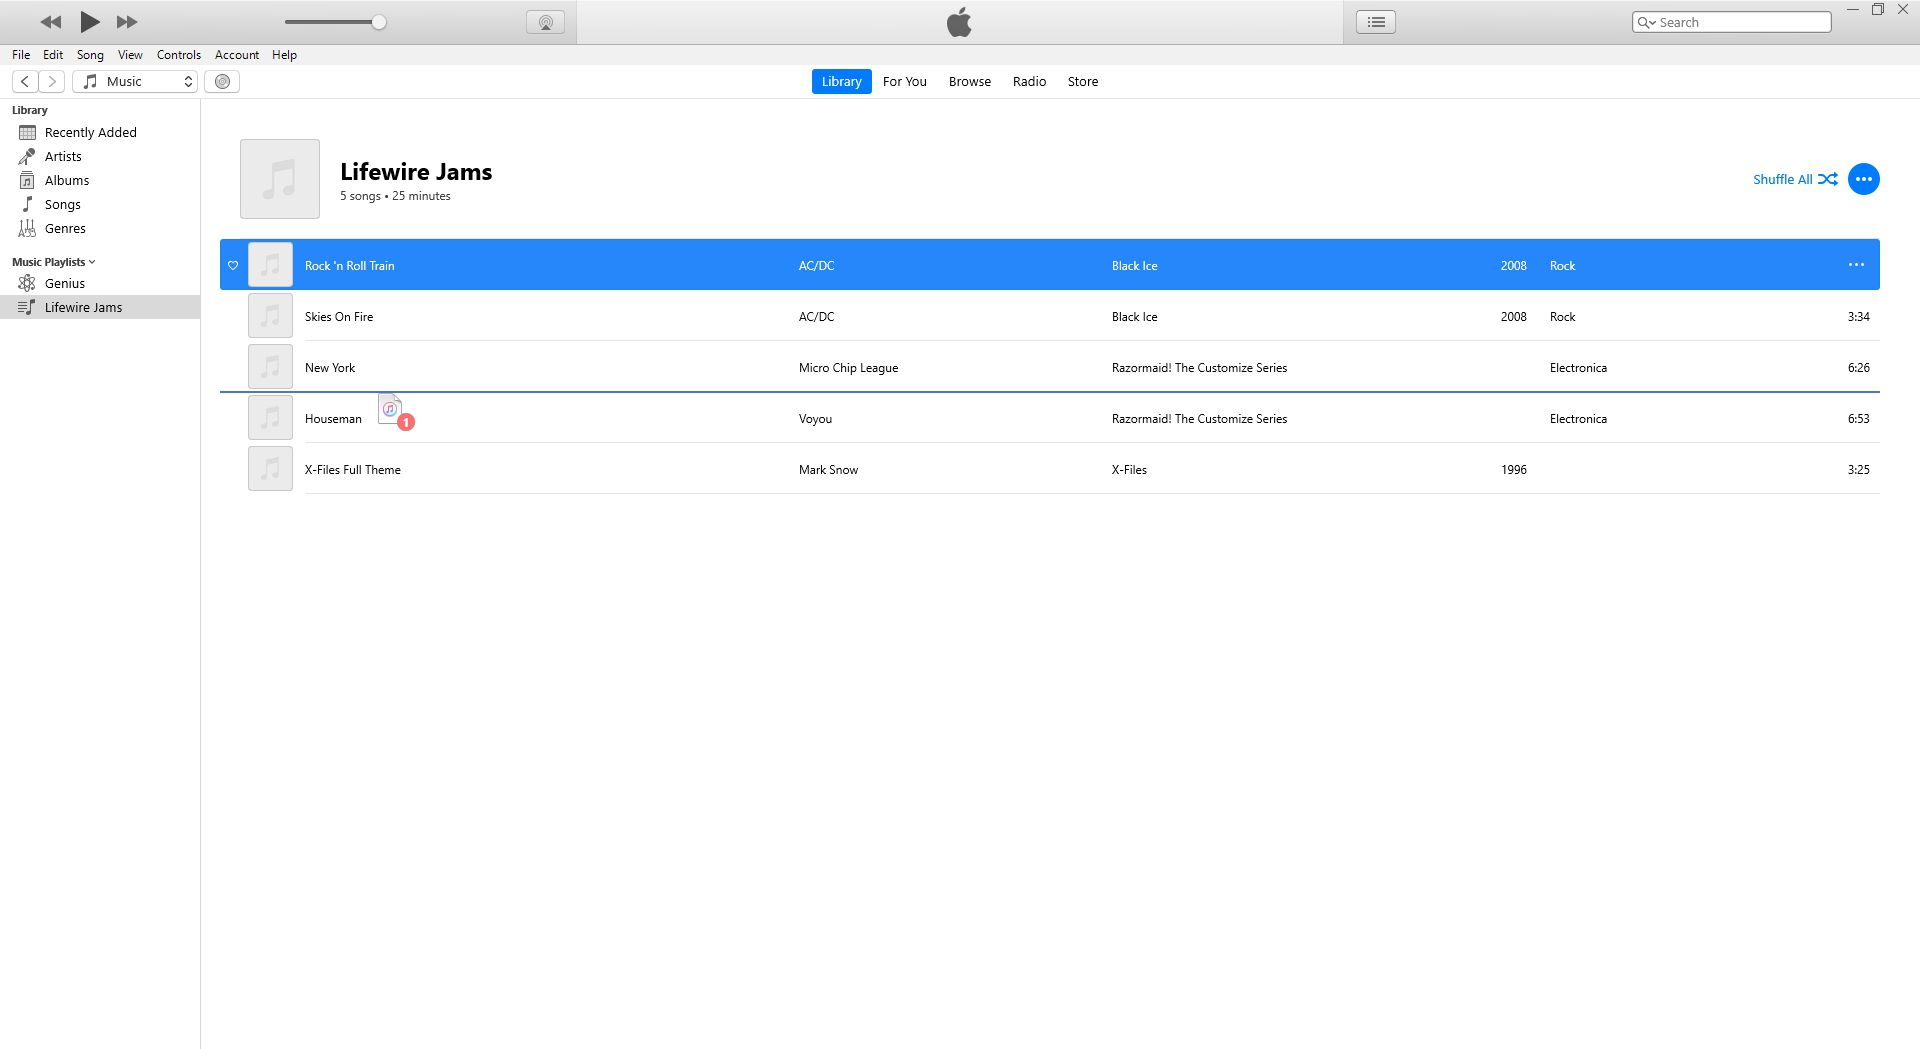 Re-ordering songs in iTunes playlist.